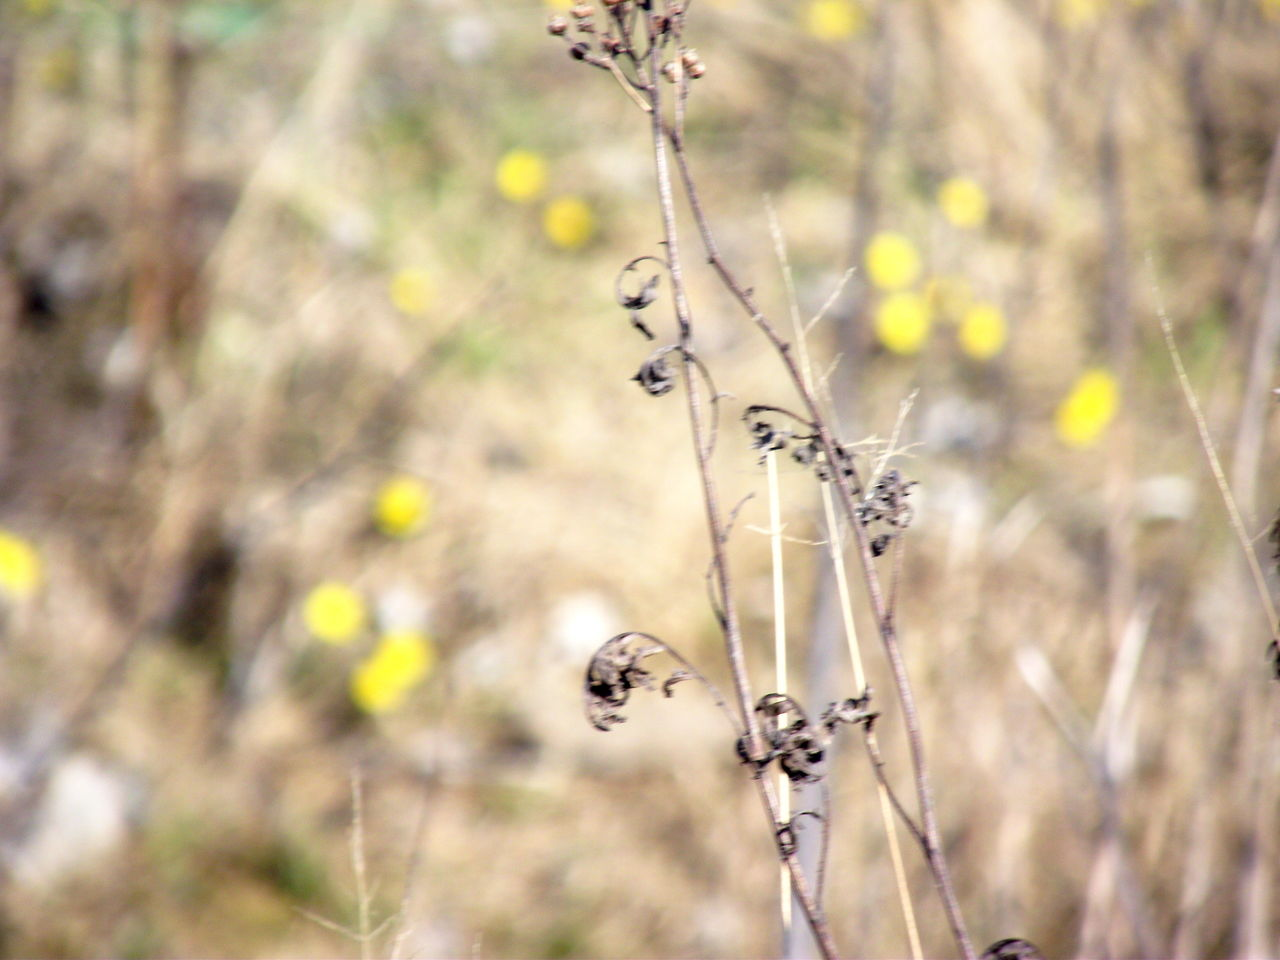 plant, focus on foreground, nature, no people, day, growth, close-up, tranquility, land, dry, beauty in nature, outdoors, plant stem, field, fragility, selective focus, vulnerability, flower, animal wildlife, animals in the wild, wilted plant